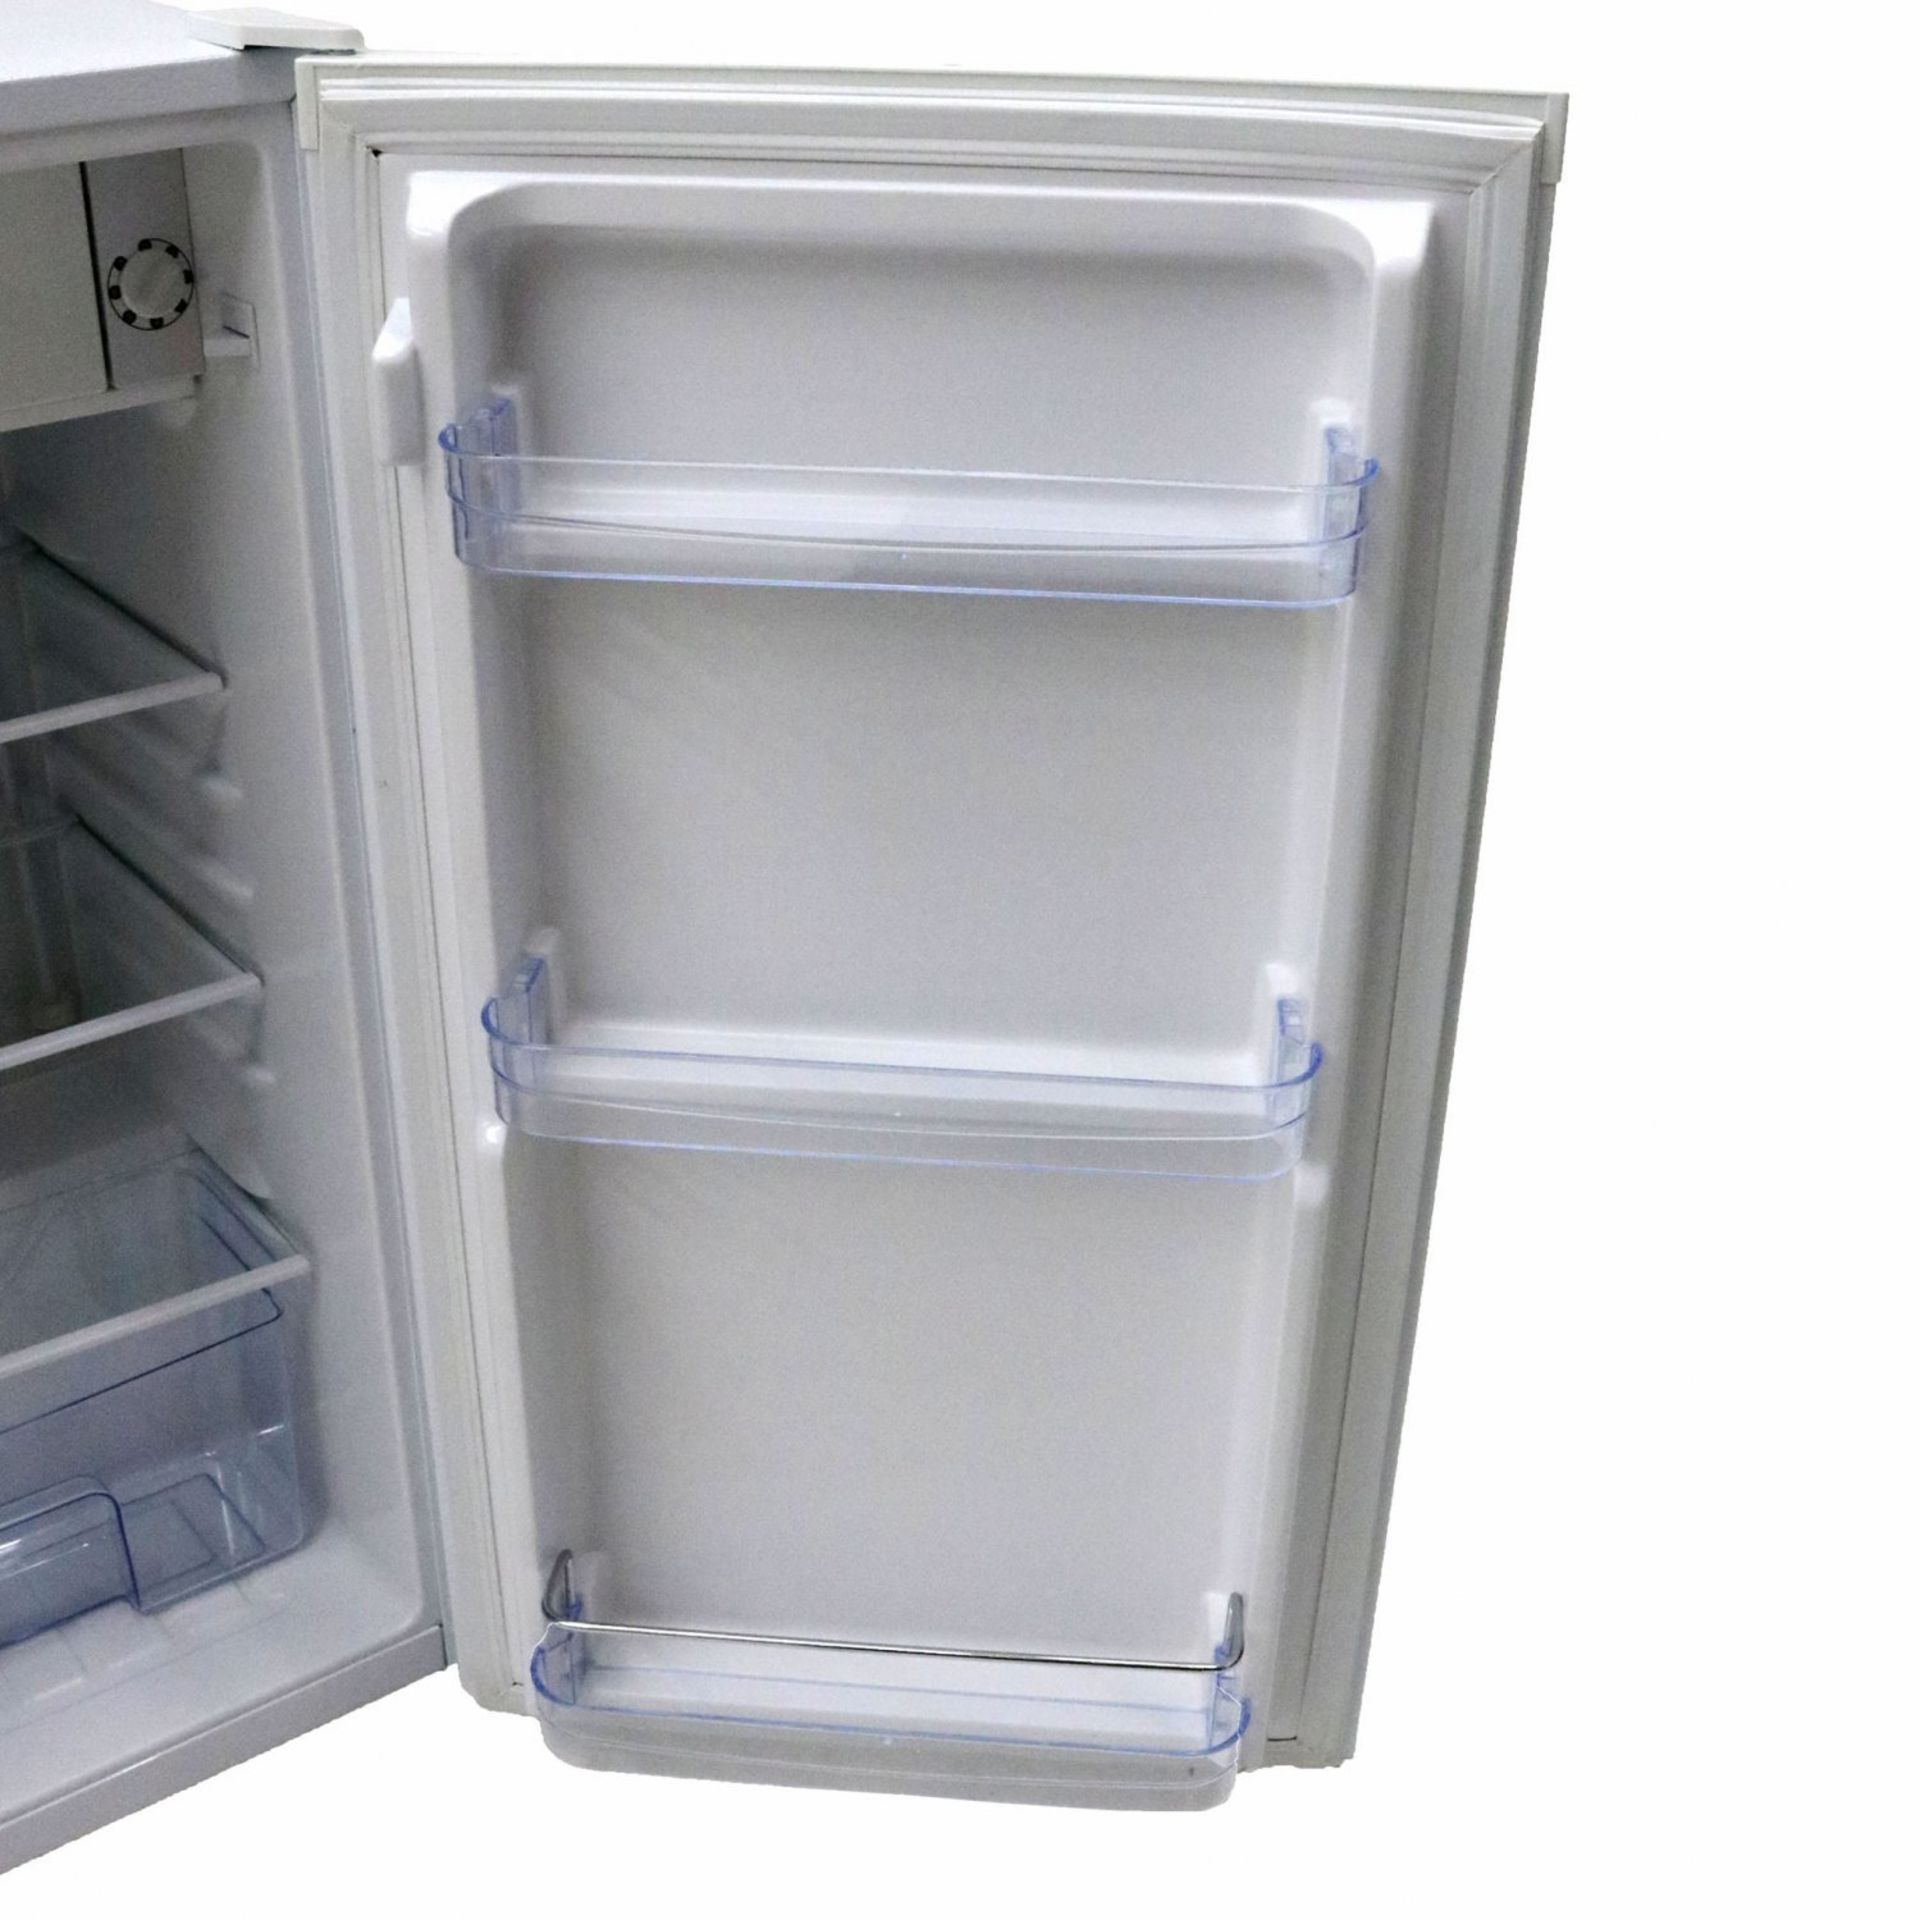 Lot 2 - (RU1) The under counter 90L fridge offers a space saving compact design with all the top qualit...